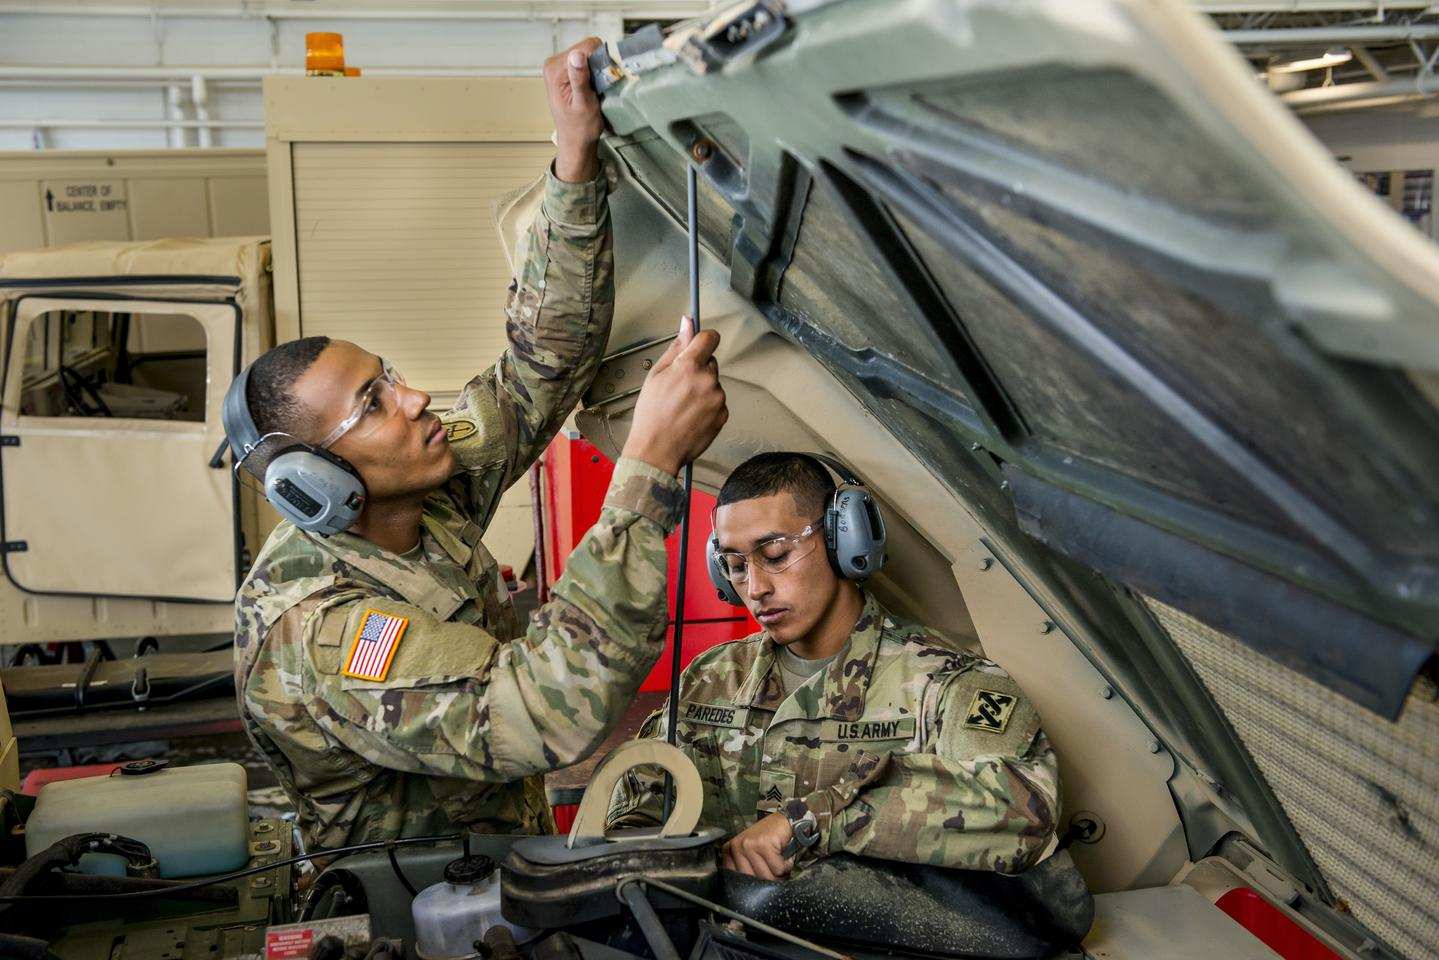 Advancements in EV technology have pushed the Army Futures and Concepts Center to consider ways to integrate it throughout the Army's wheeled-vehicle fleet